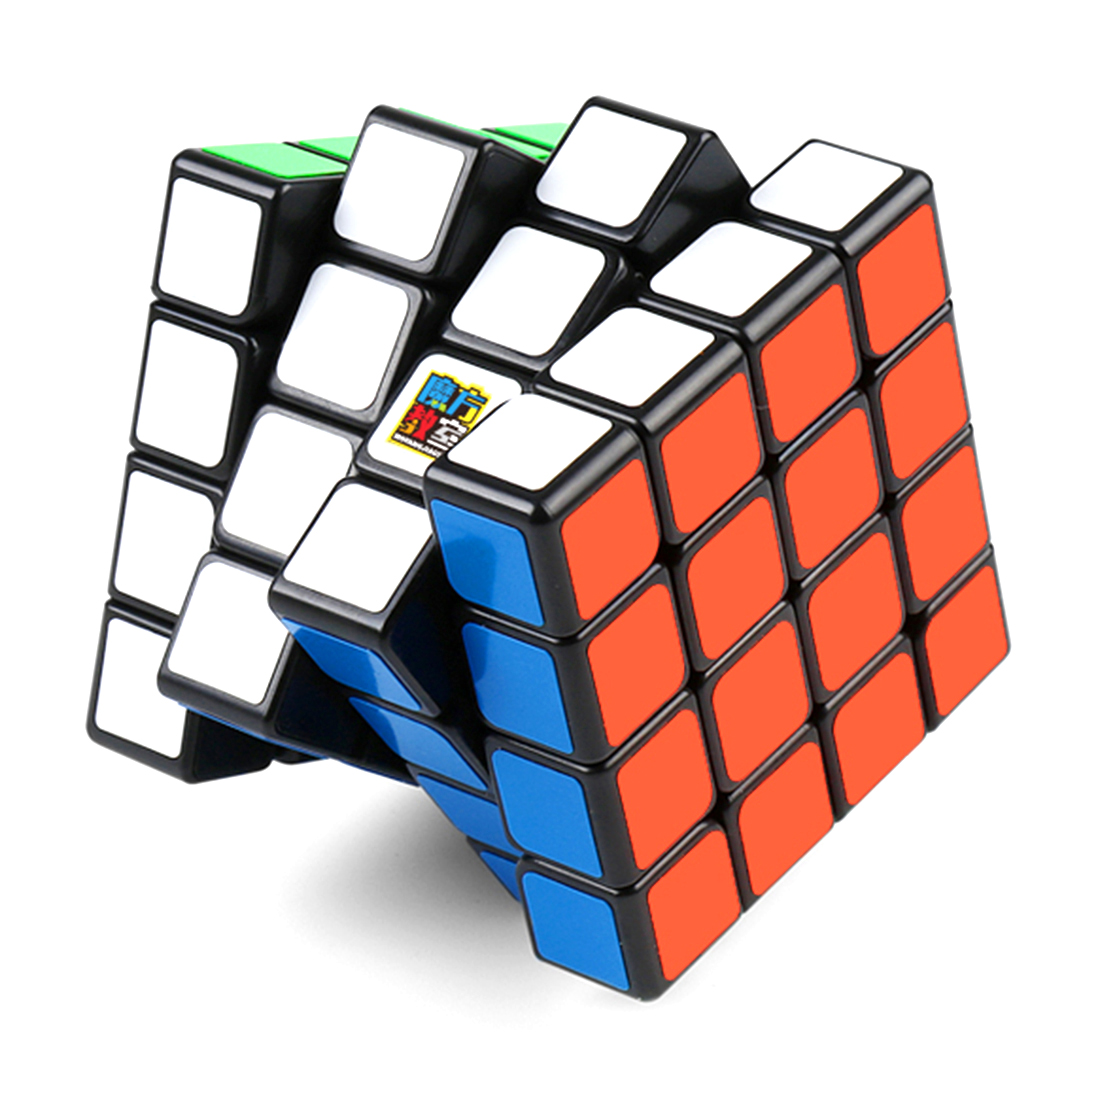 MoYu MF8840 MF4C 4x4 Magic Cube Speedcubing Puzzle for Beginner - Black-base yj yongjun moyu yuhu megaminx magic cube speed puzzle cubes kids toys educational toy